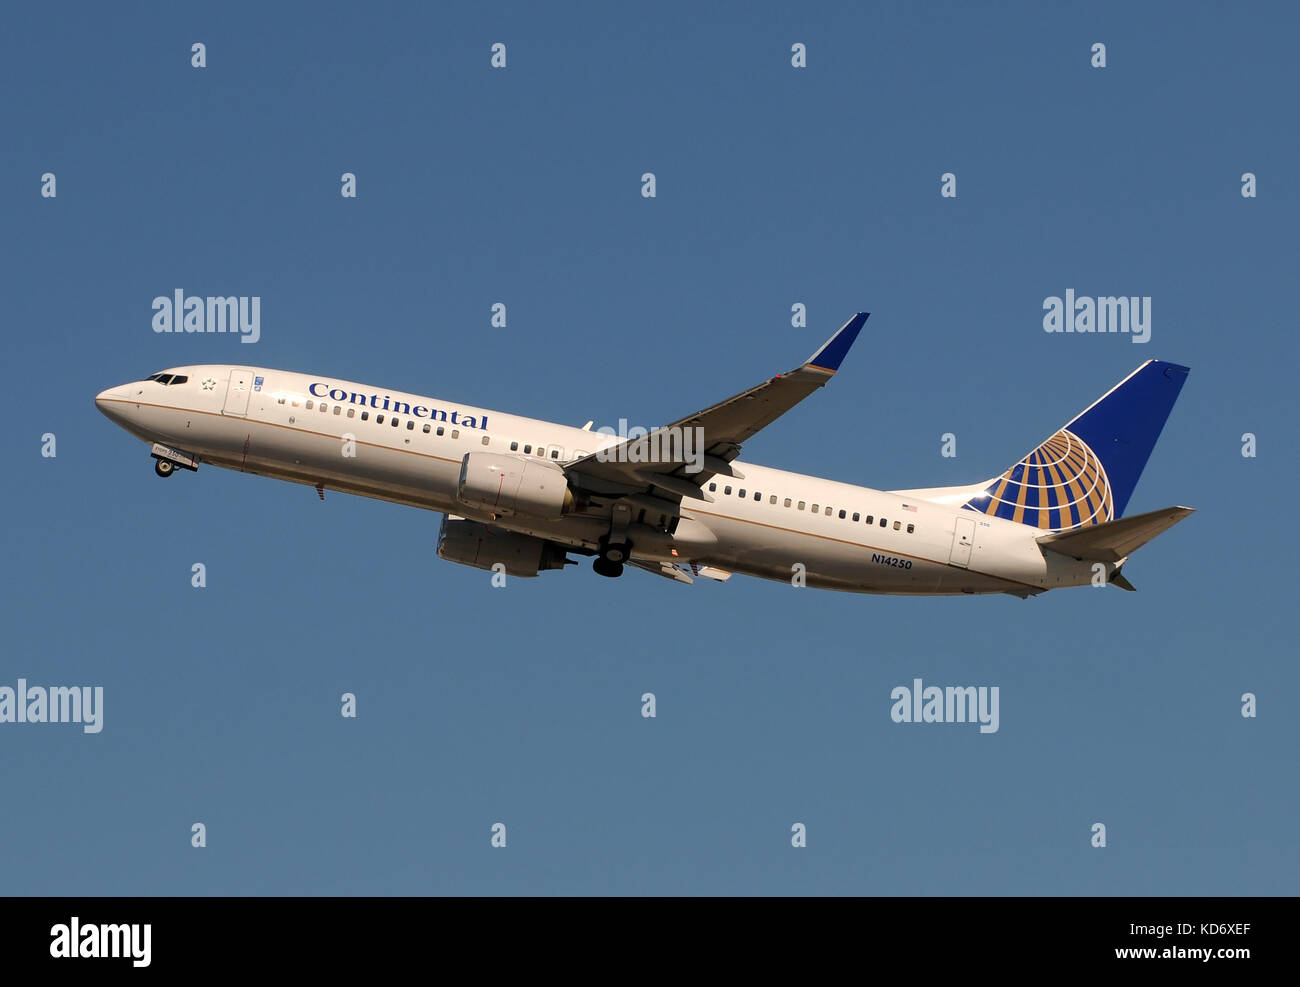 Fort Lauderdale, Florida - January 29, 2011: Continental Airlines Boeing 737-800 jet taking off. Continental is - Stock Image